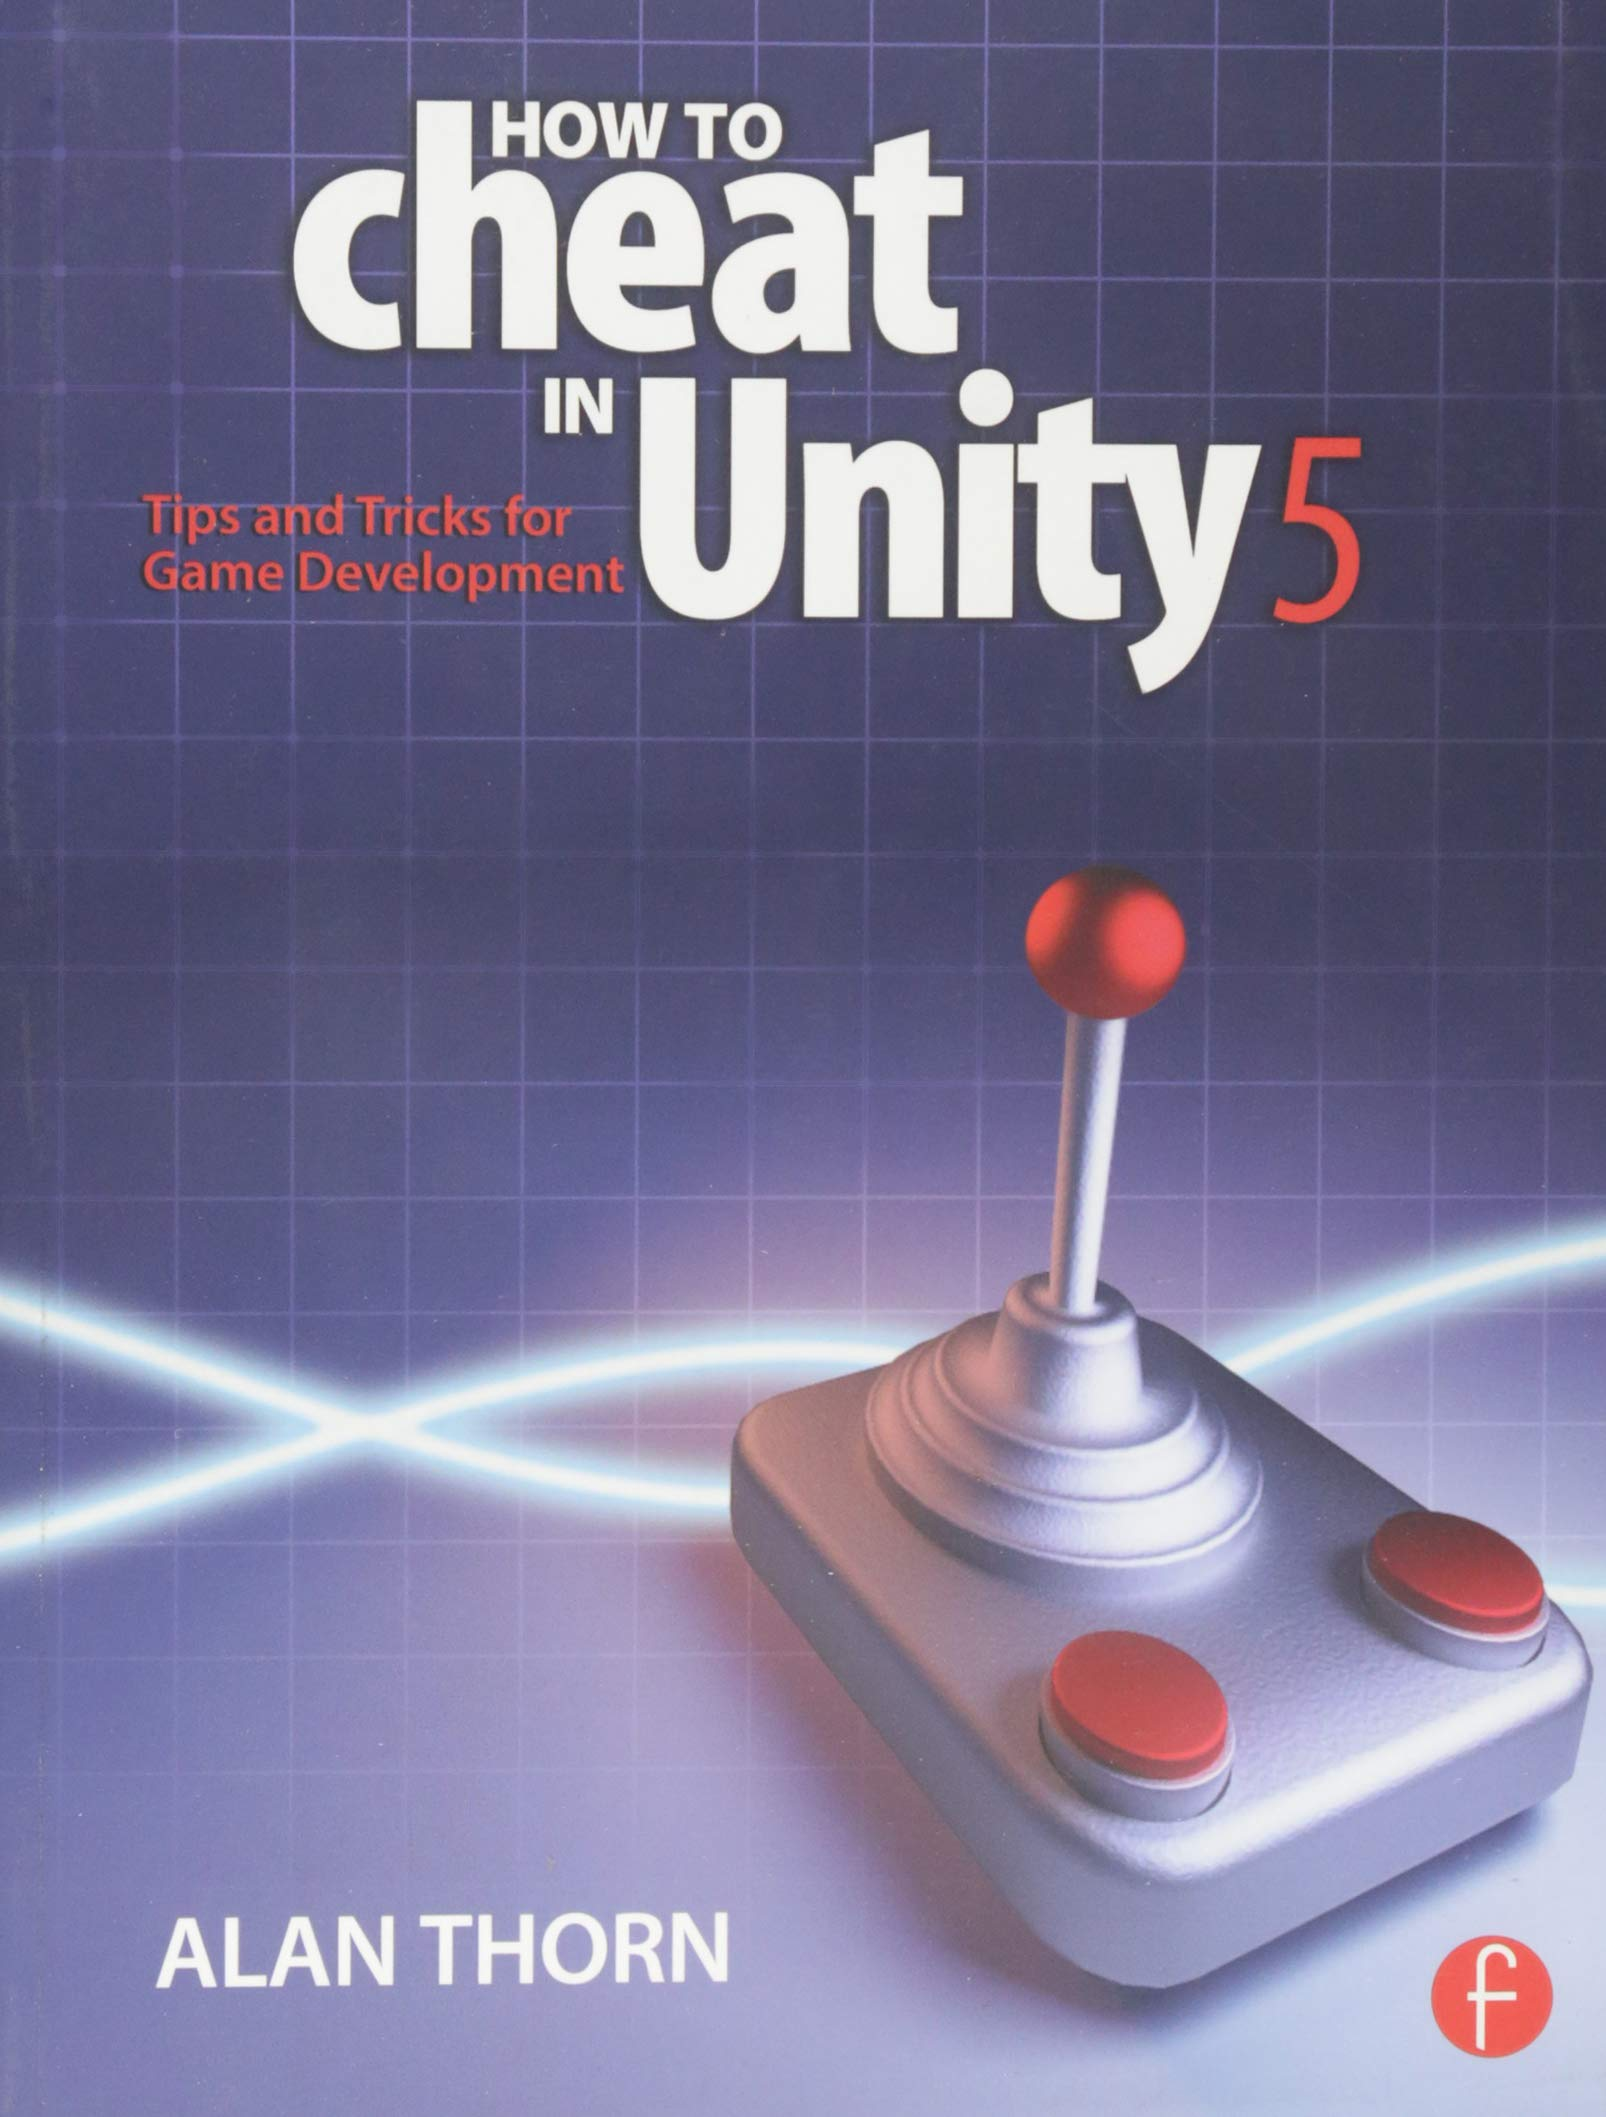 How to Cheat in Unity 5: Tips and Tricks for Game